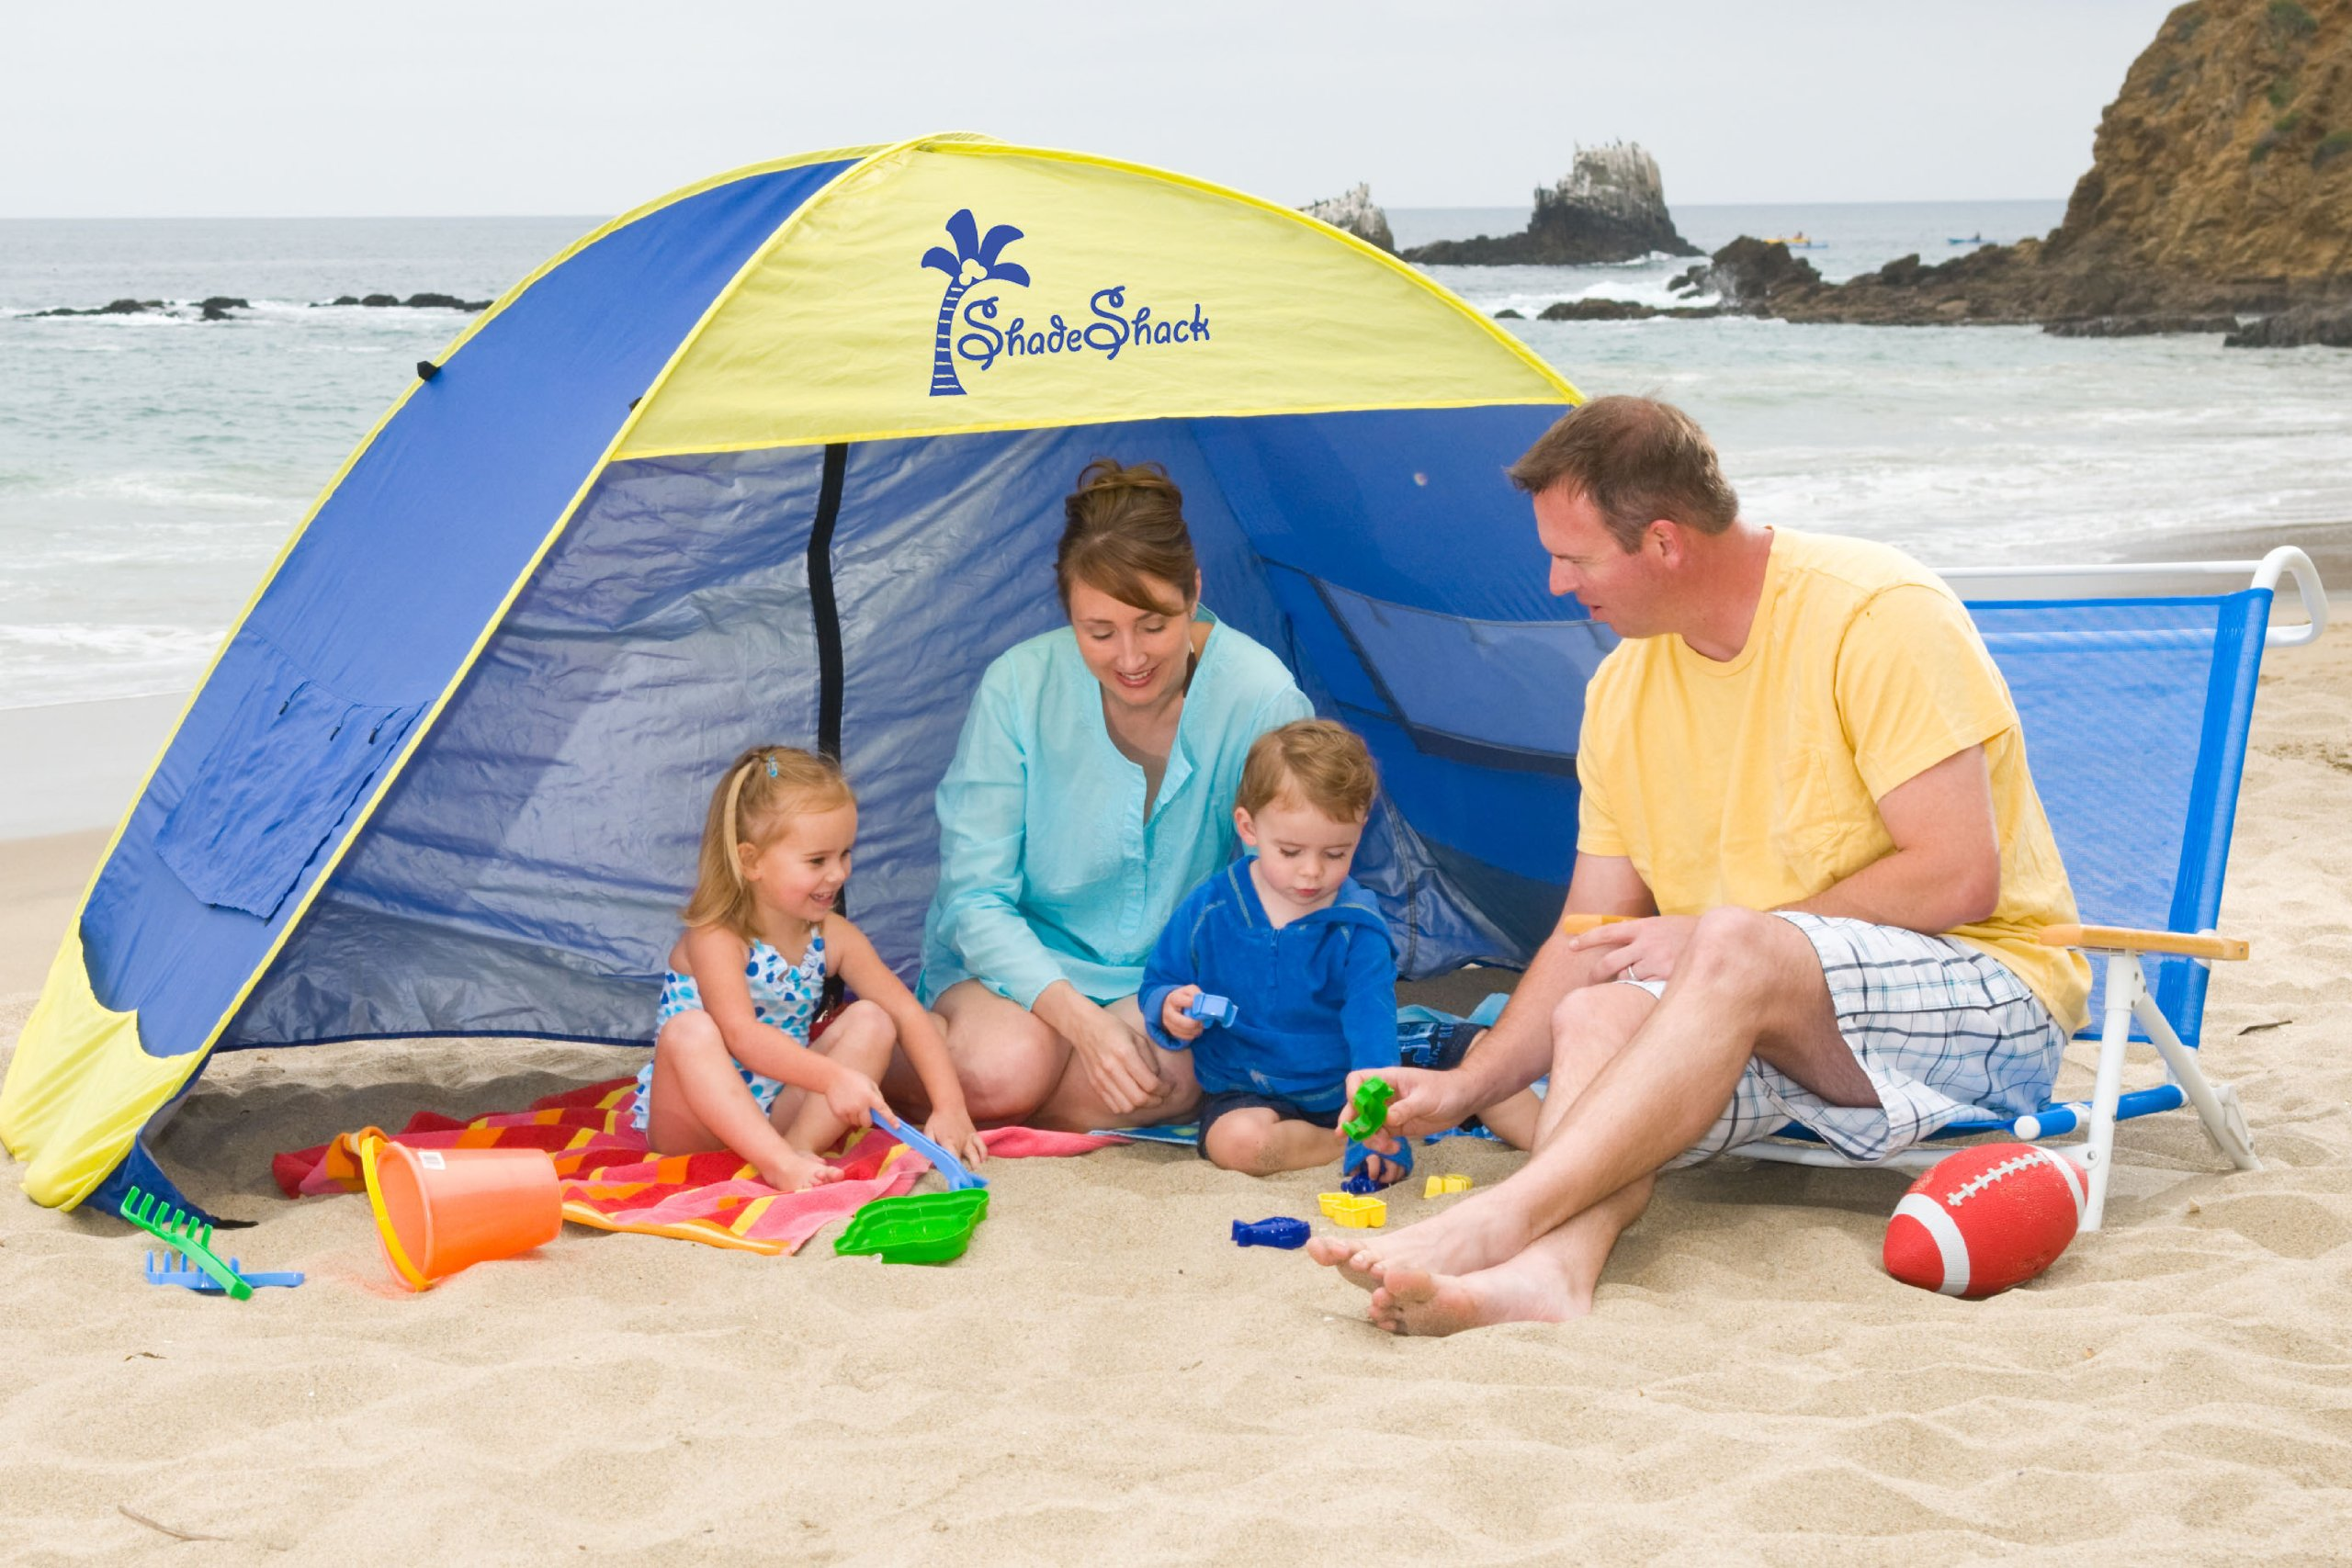 shade shack instant pop up family beach tent and sun shelter ebay. Black Bedroom Furniture Sets. Home Design Ideas